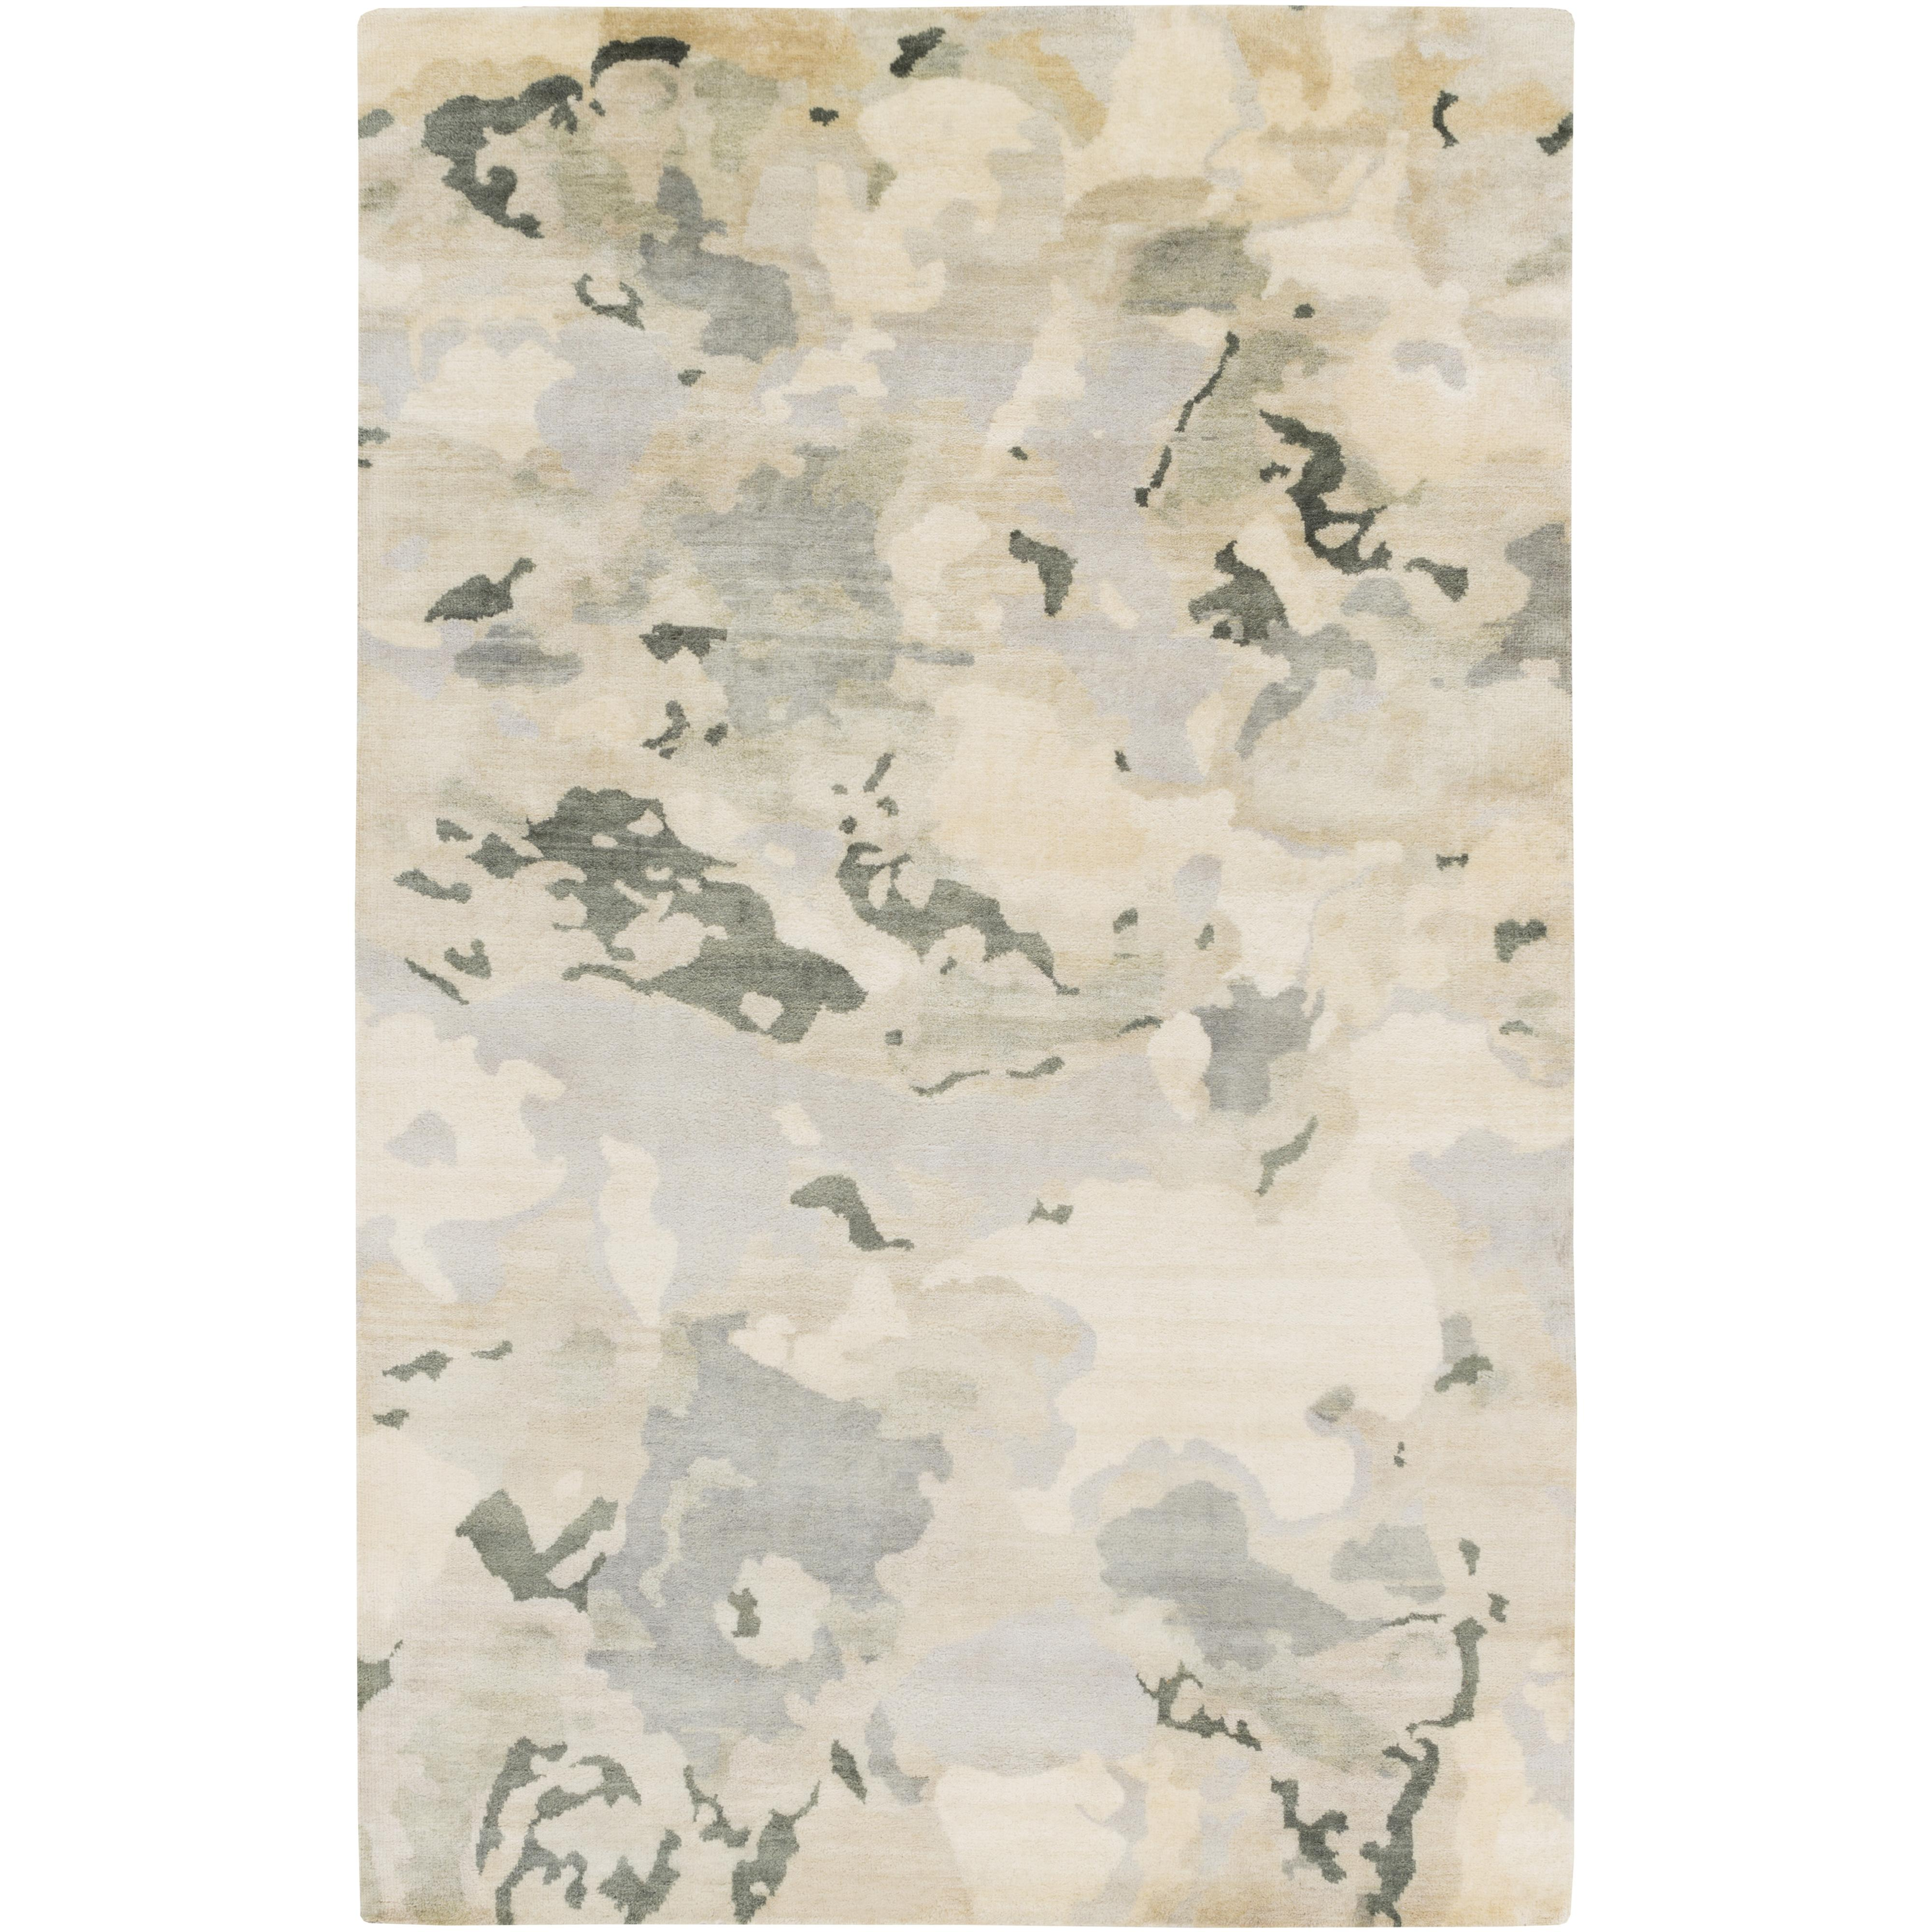 Surya Slice of Nature 5' x 8' - Item Number: SLI6406-58